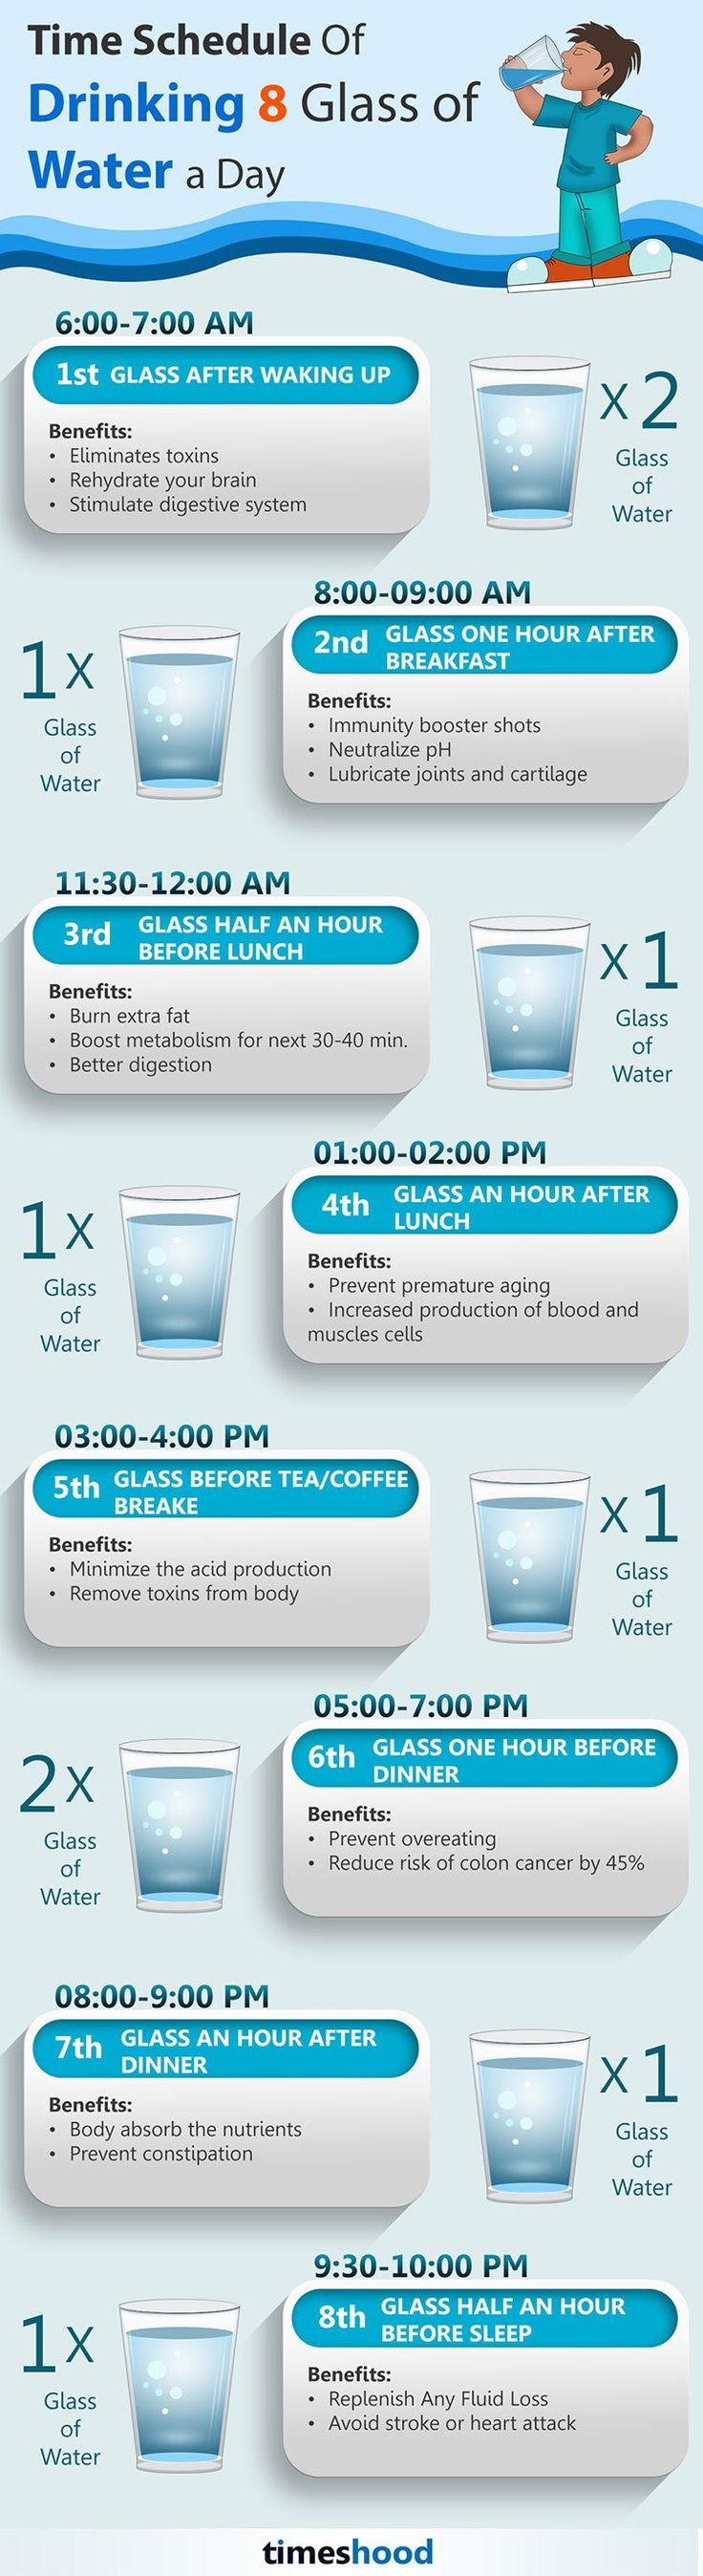 Healthy Time Schedule Of Drinking 8 Glass Of Water A Day with Benefits. How much water should your drink a day and when? Drink Water Schedule